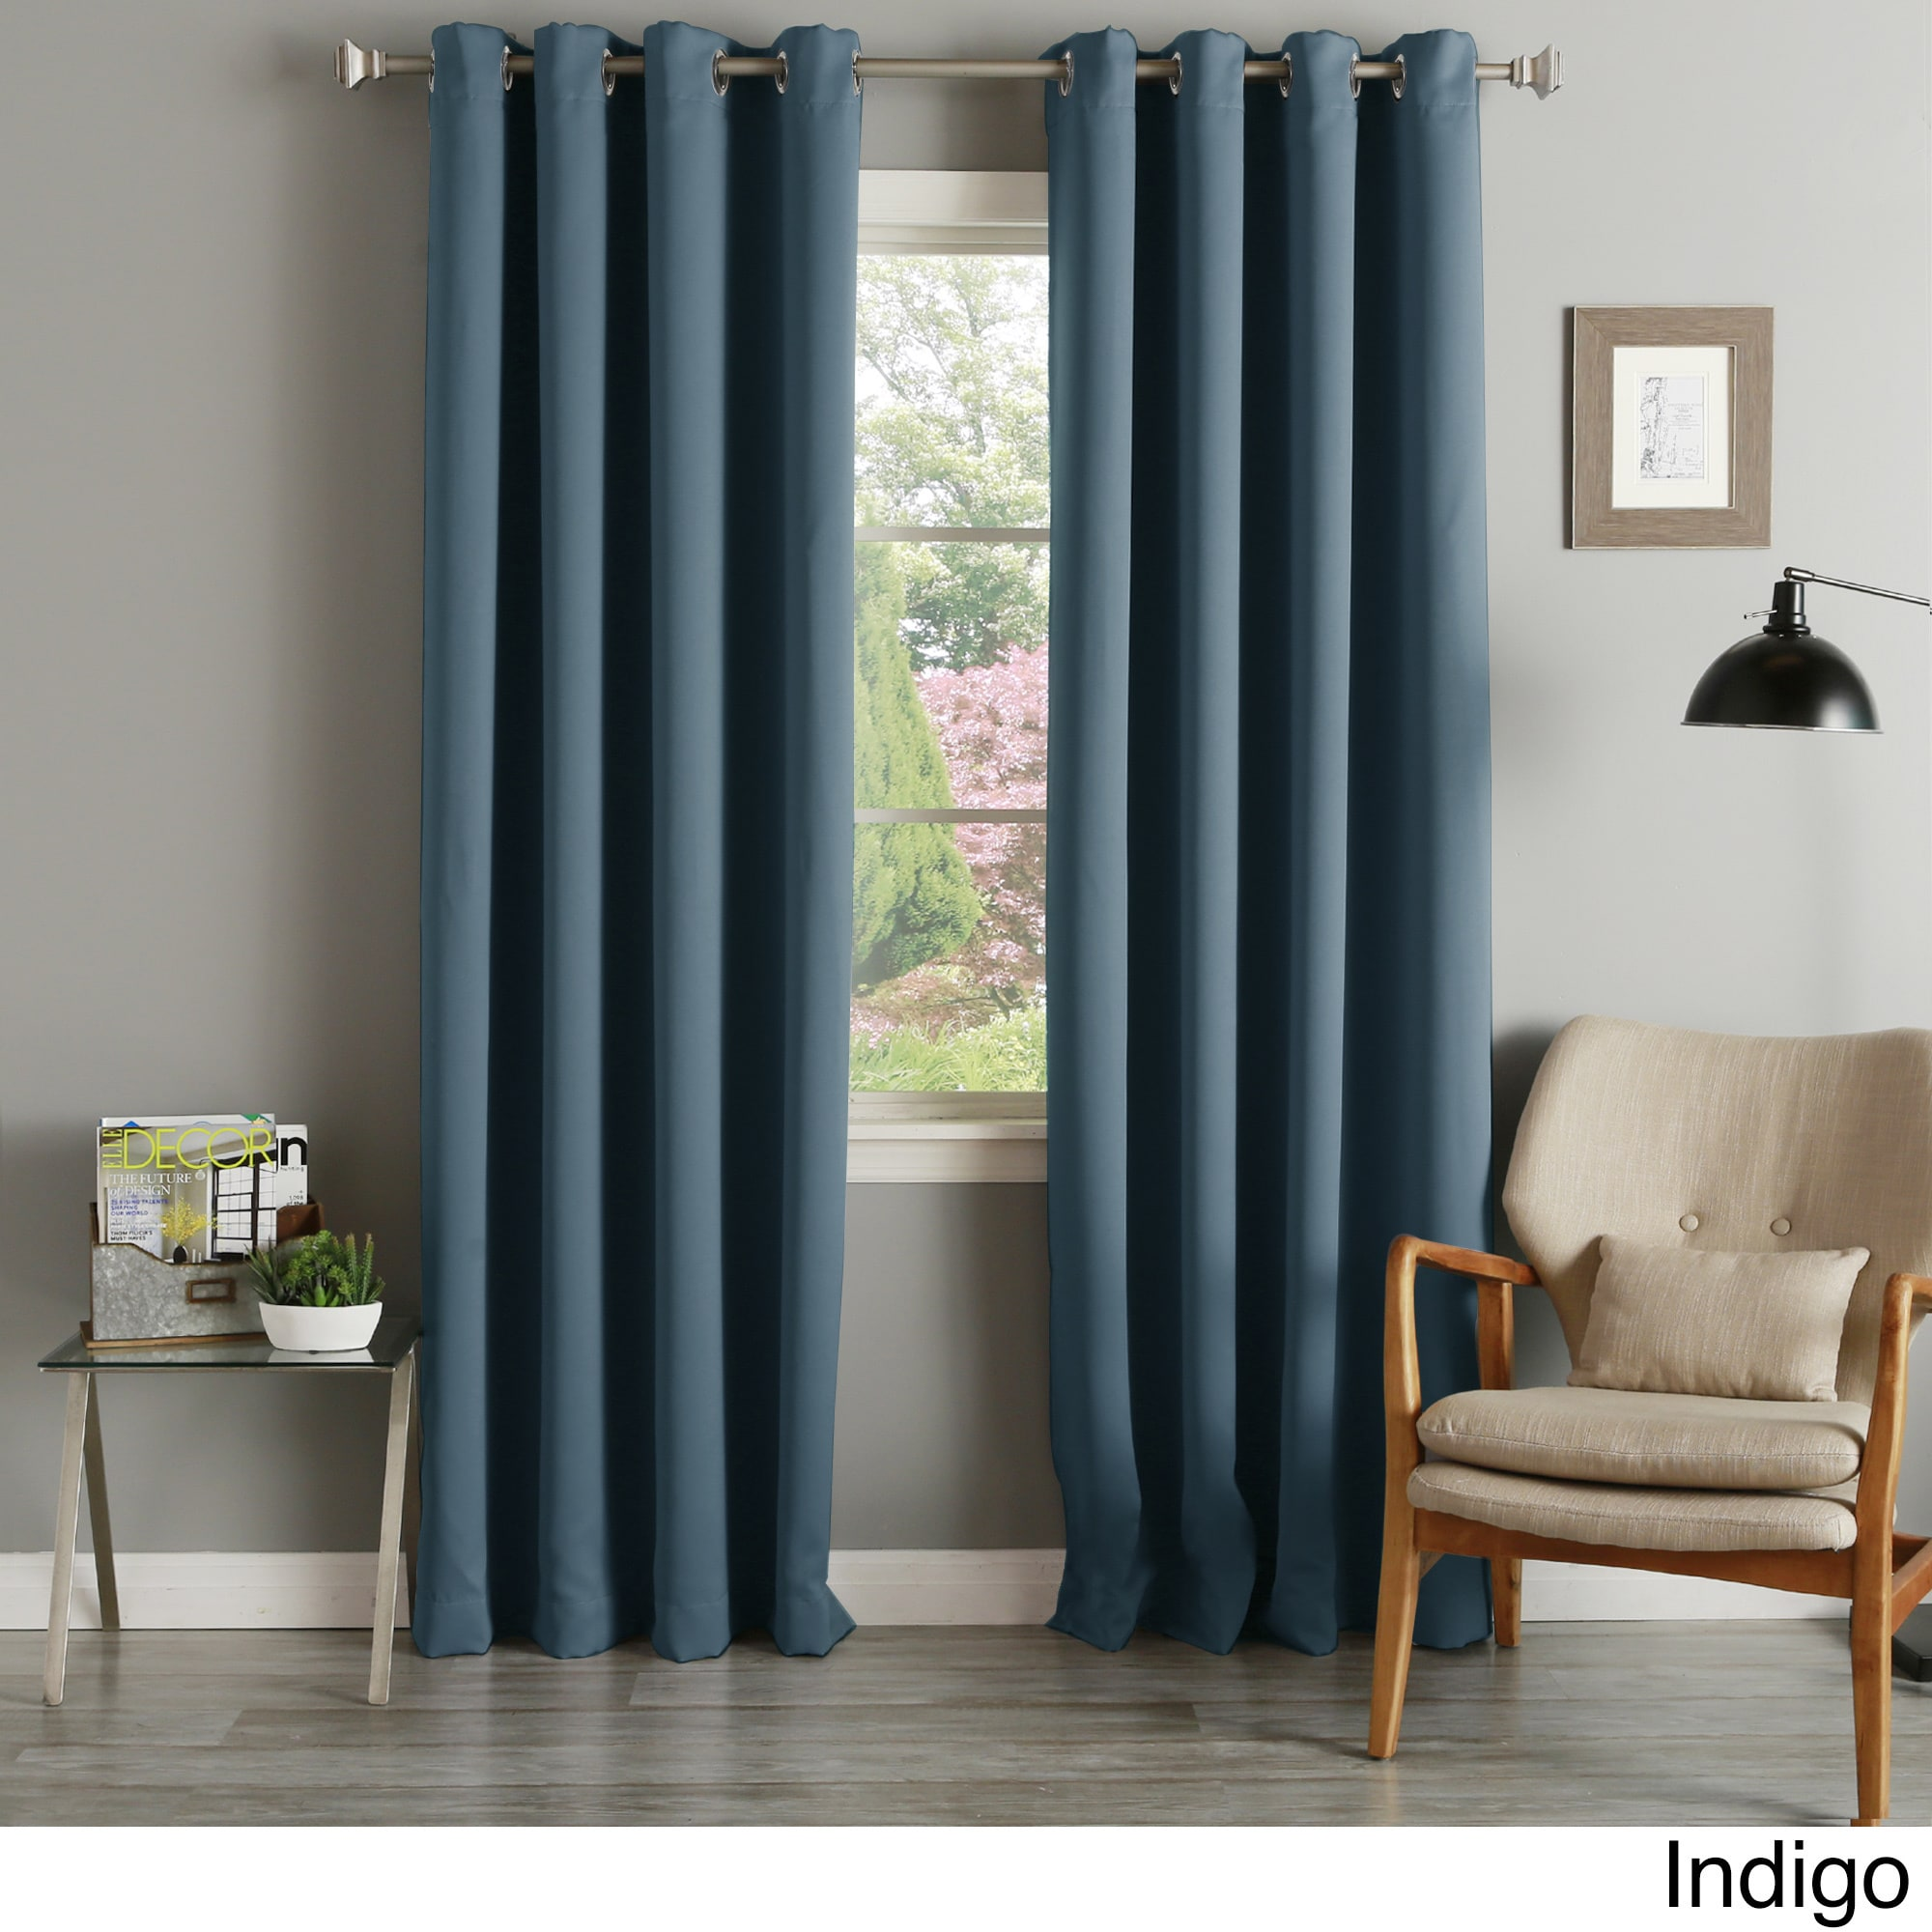 pack grommet cur of turquoise treatment blackout panels products chrome with thermal turq curtains design curtain insulated window white chevron